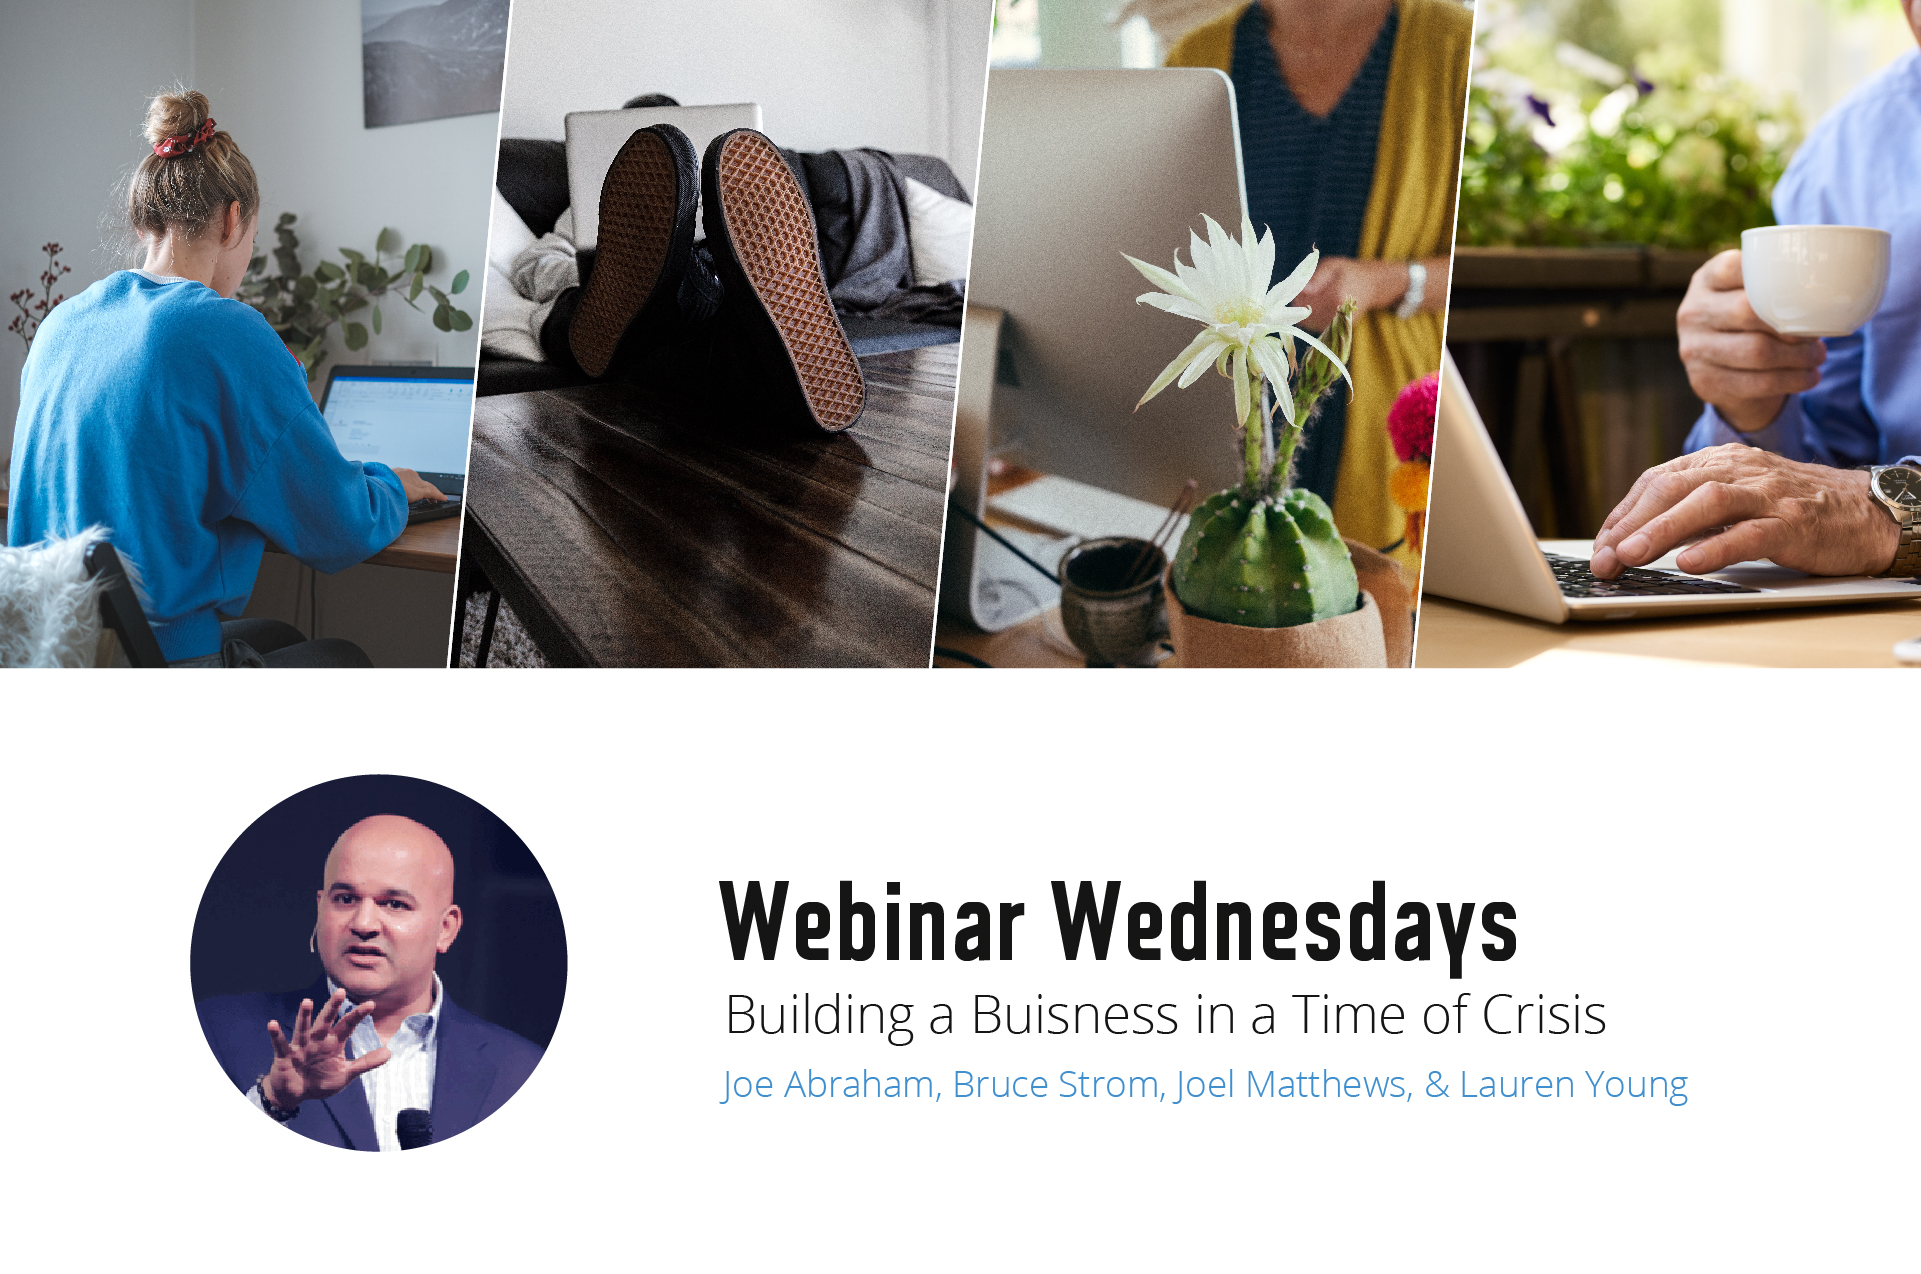 webinar wednesday building a business in a time of crisis